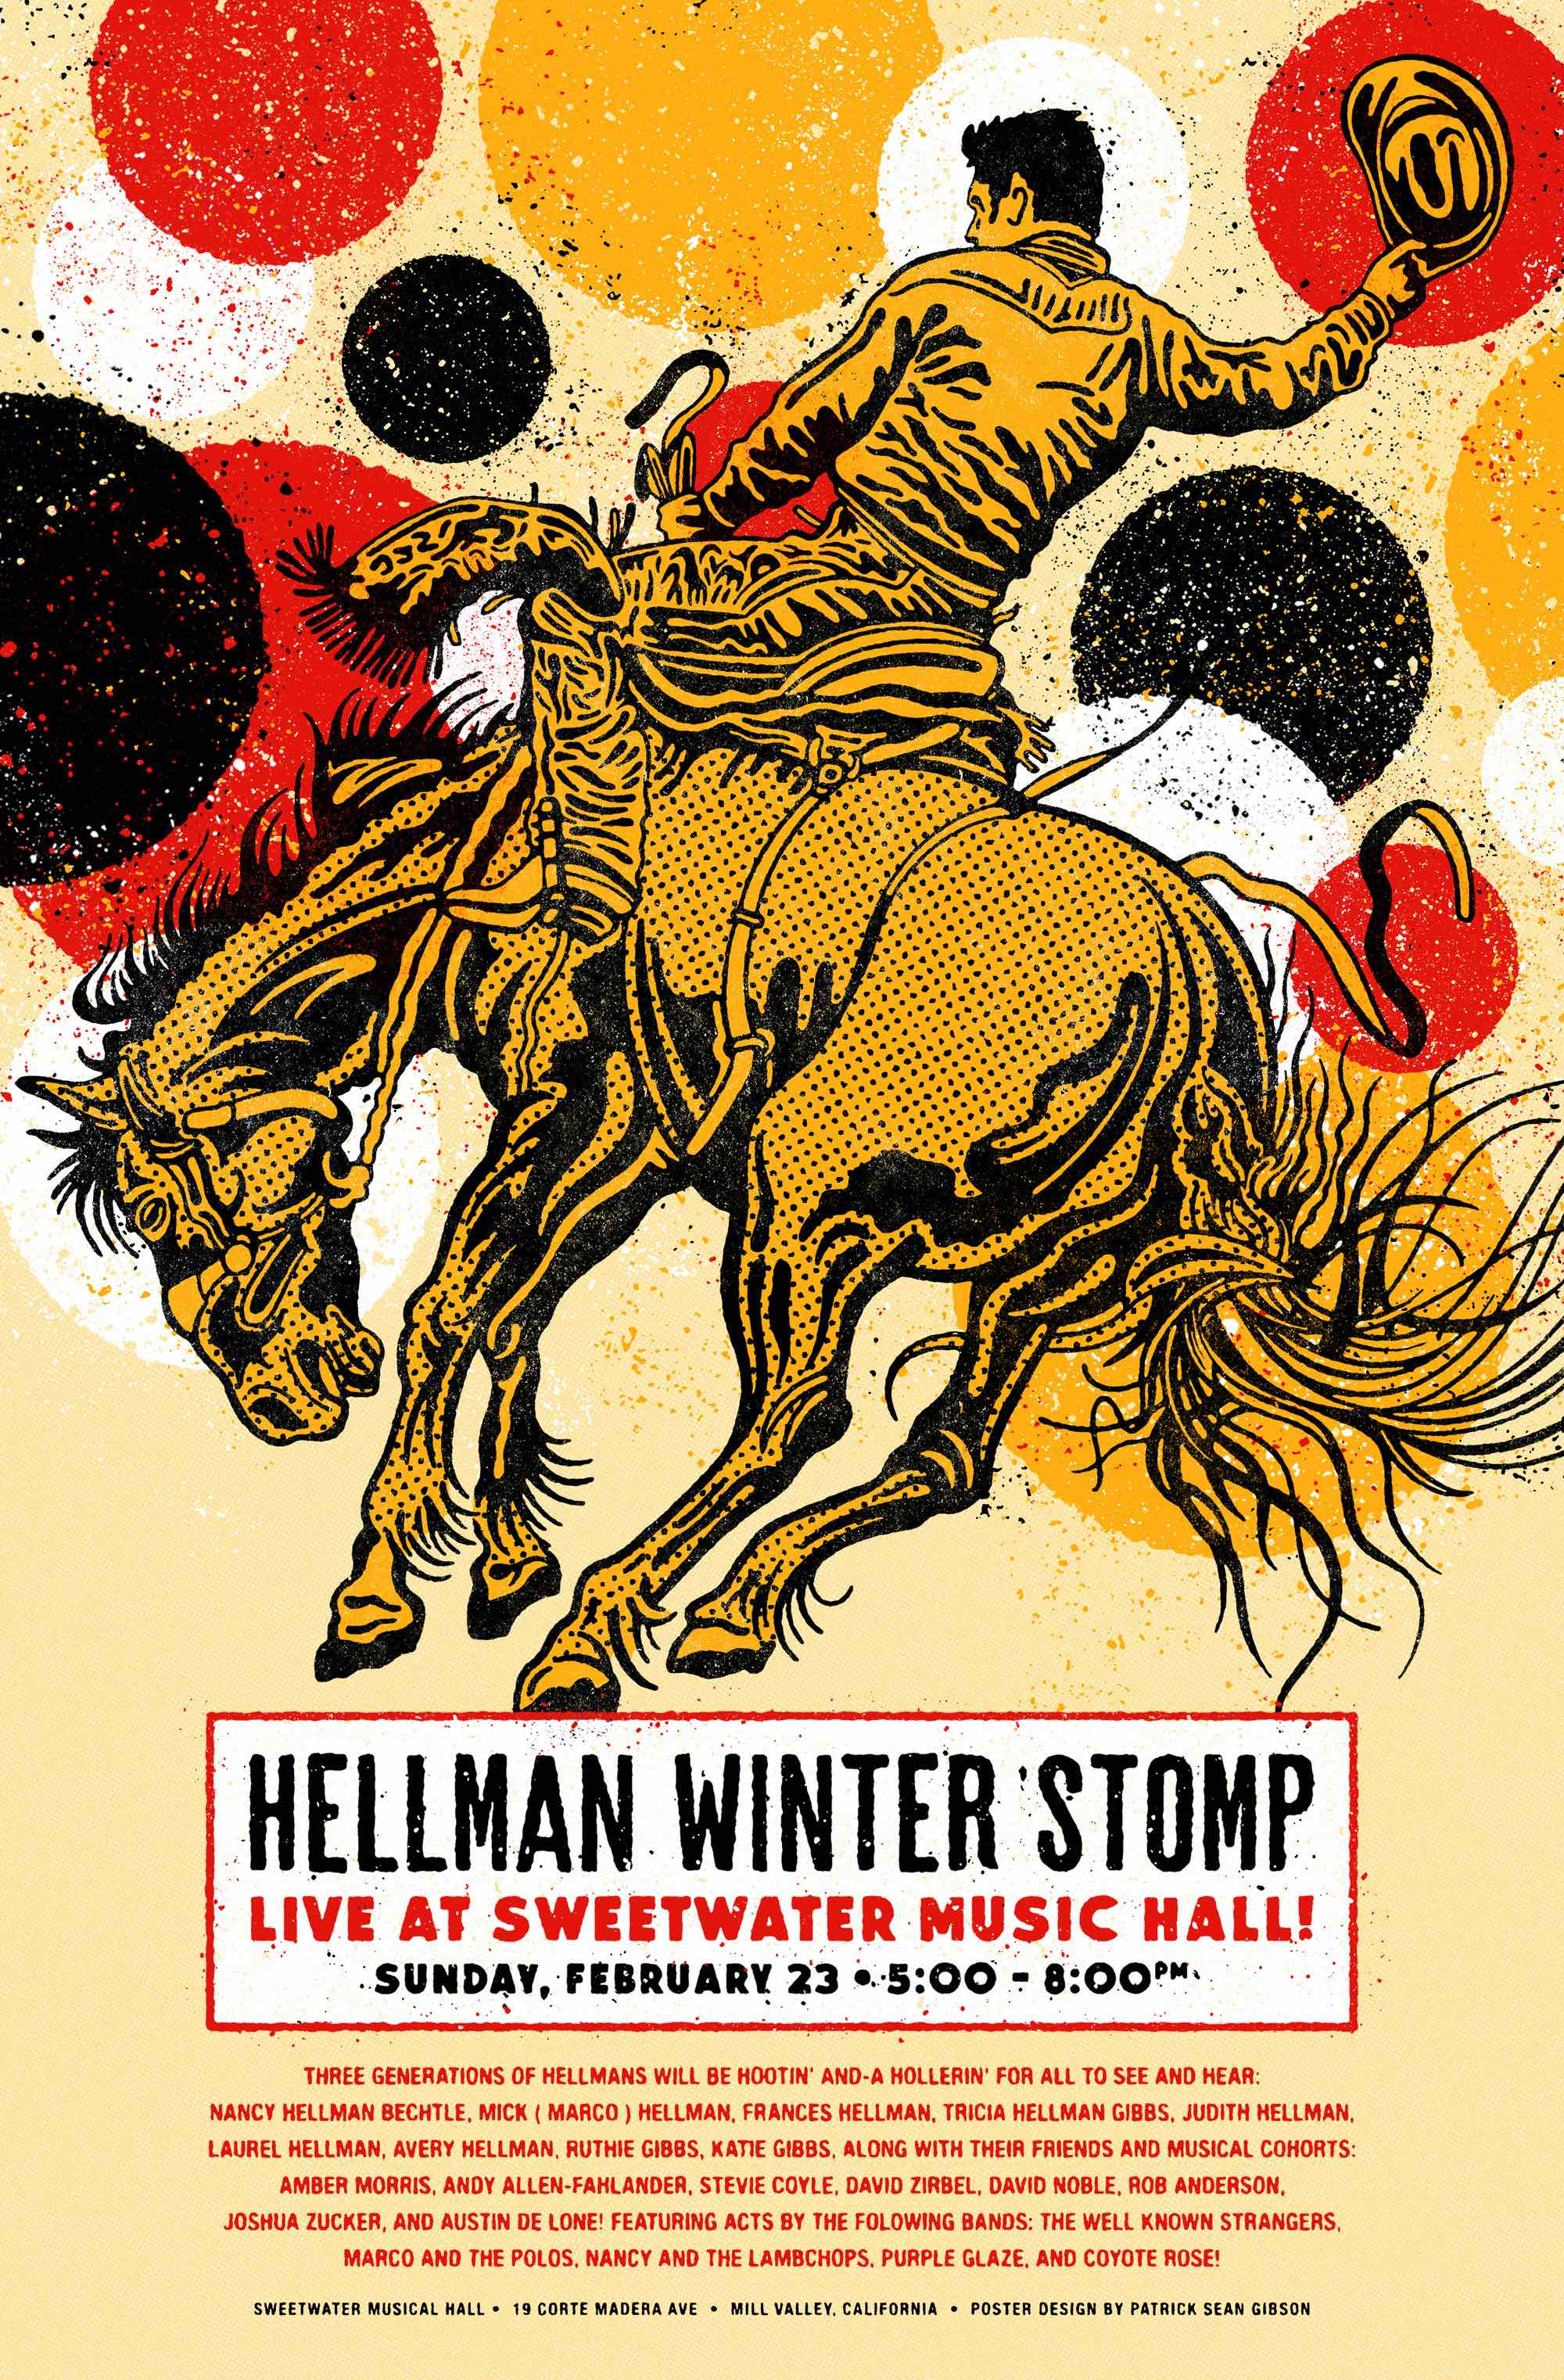 Hellman Winter Stomp Comes To Sweetwater on Februrary 23